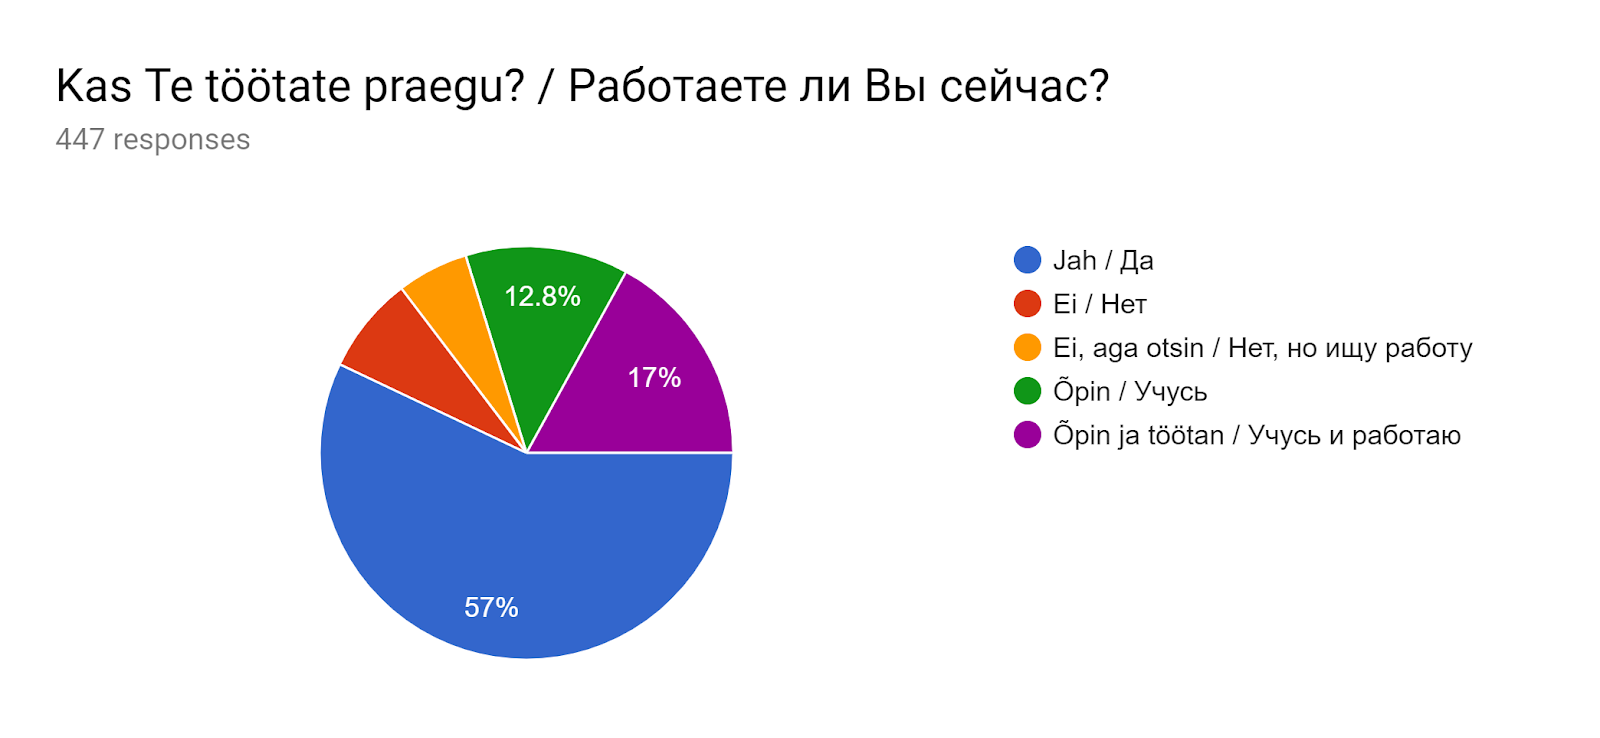 Forms response chart. Question title: Kas Te töötate praegu? / Работаете ли Вы сейчас?. Number of responses: 447 responses.